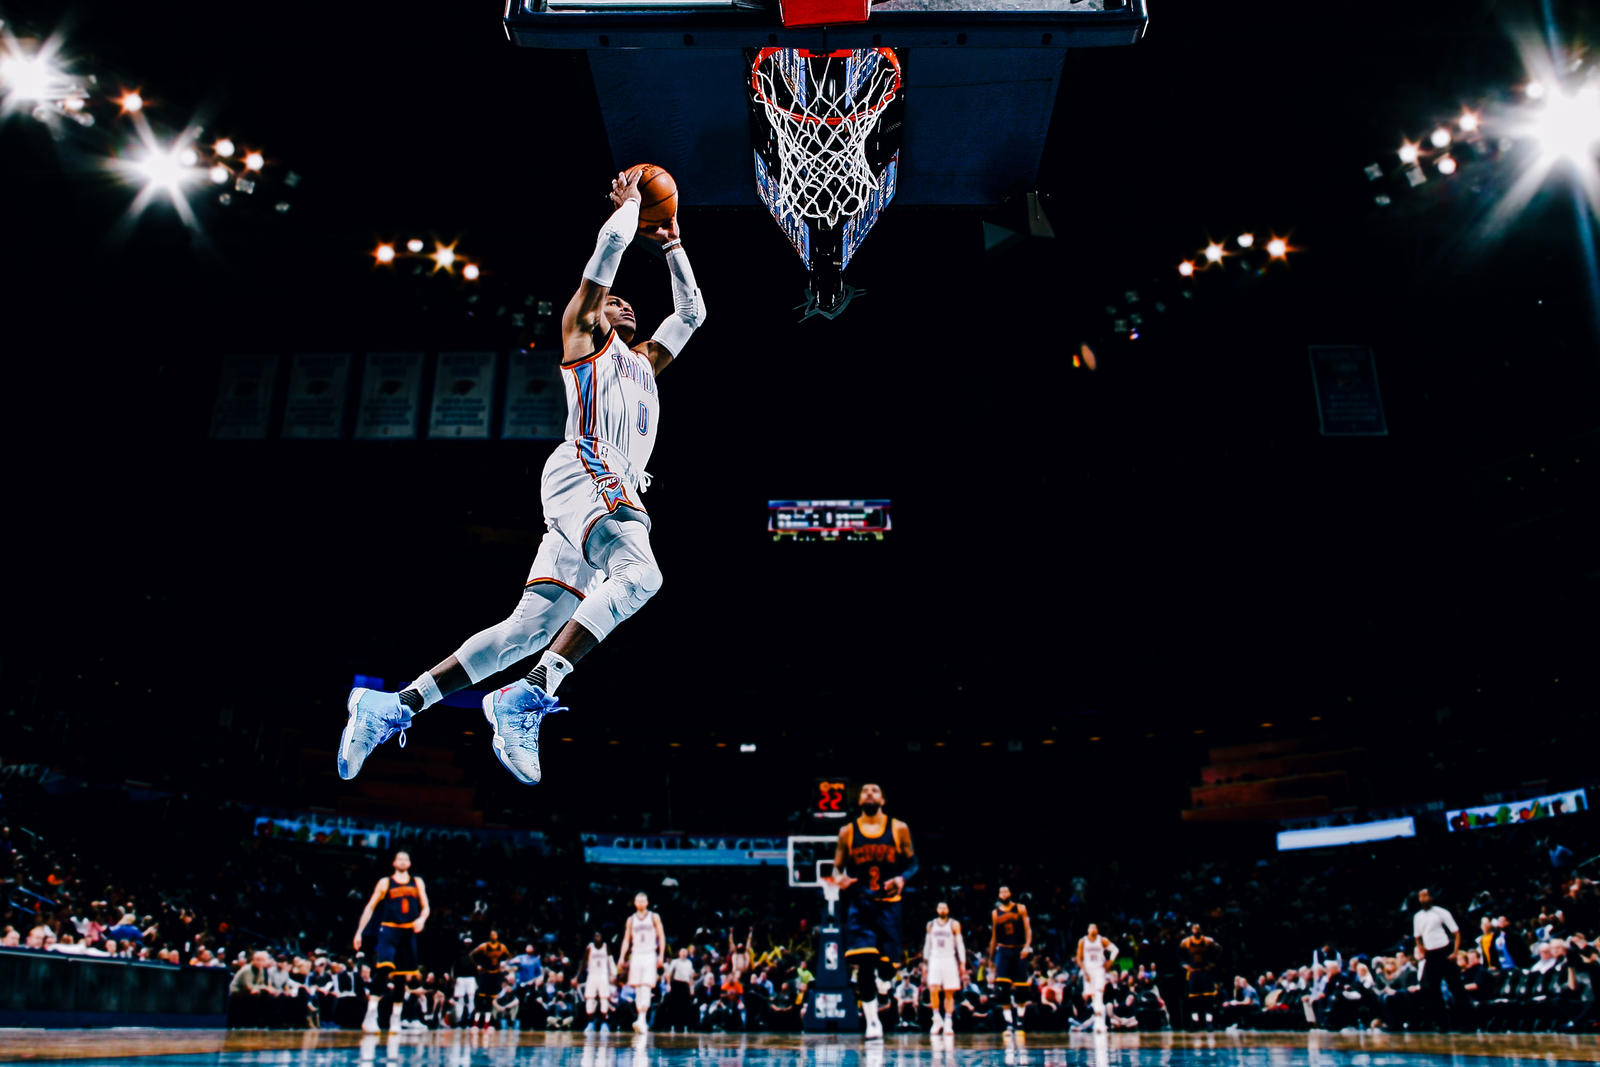 a8819b9d4dd955 ... Brand athlete since Michael Jordan in 1998 to win the MVP award. MVP   Why Not  1